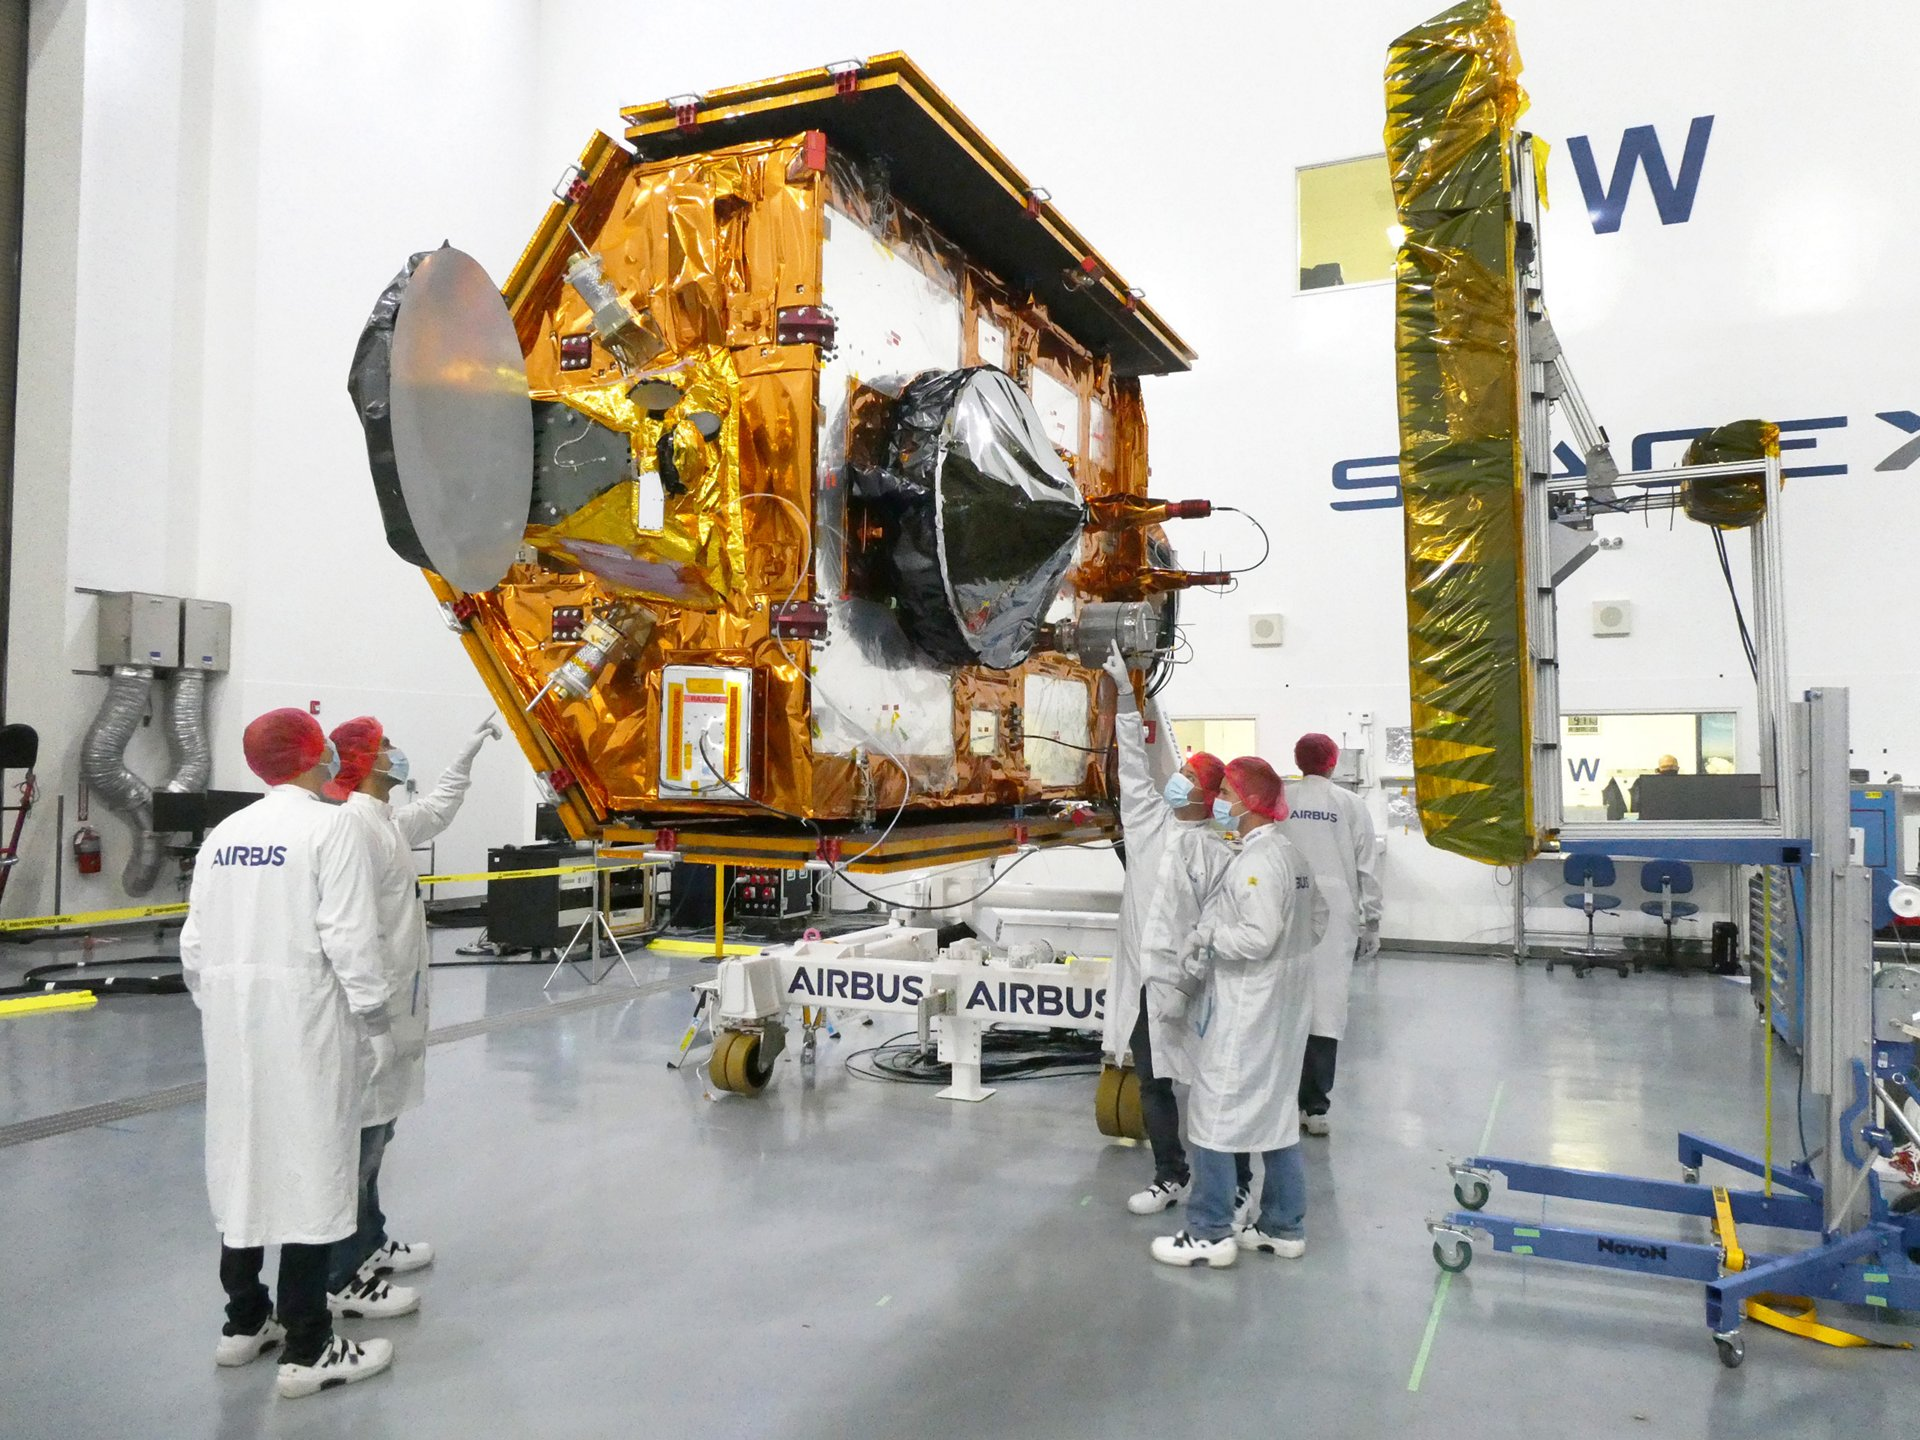 The satellite weighs approximately 1.5 tons. Now starting with Sentinel-6 Michael Freilich, the satellites will collect satellite-based measurements of the oceans' surfaces, continuing a task that first began in 1992. The second Sentinel-6 spacecraft is expected to follow in 2025.